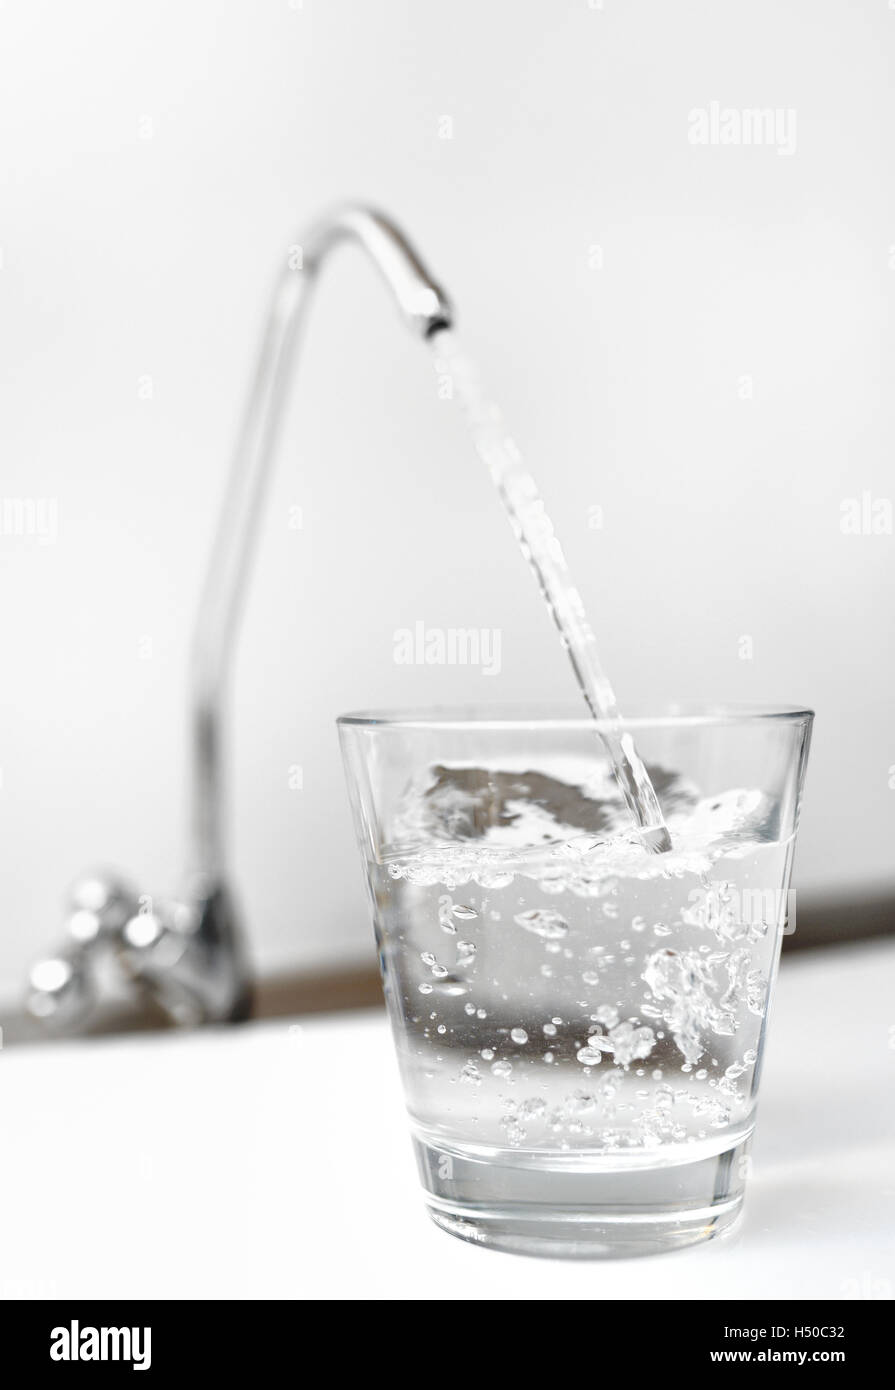 A glass of water from filter tap - Stock Image